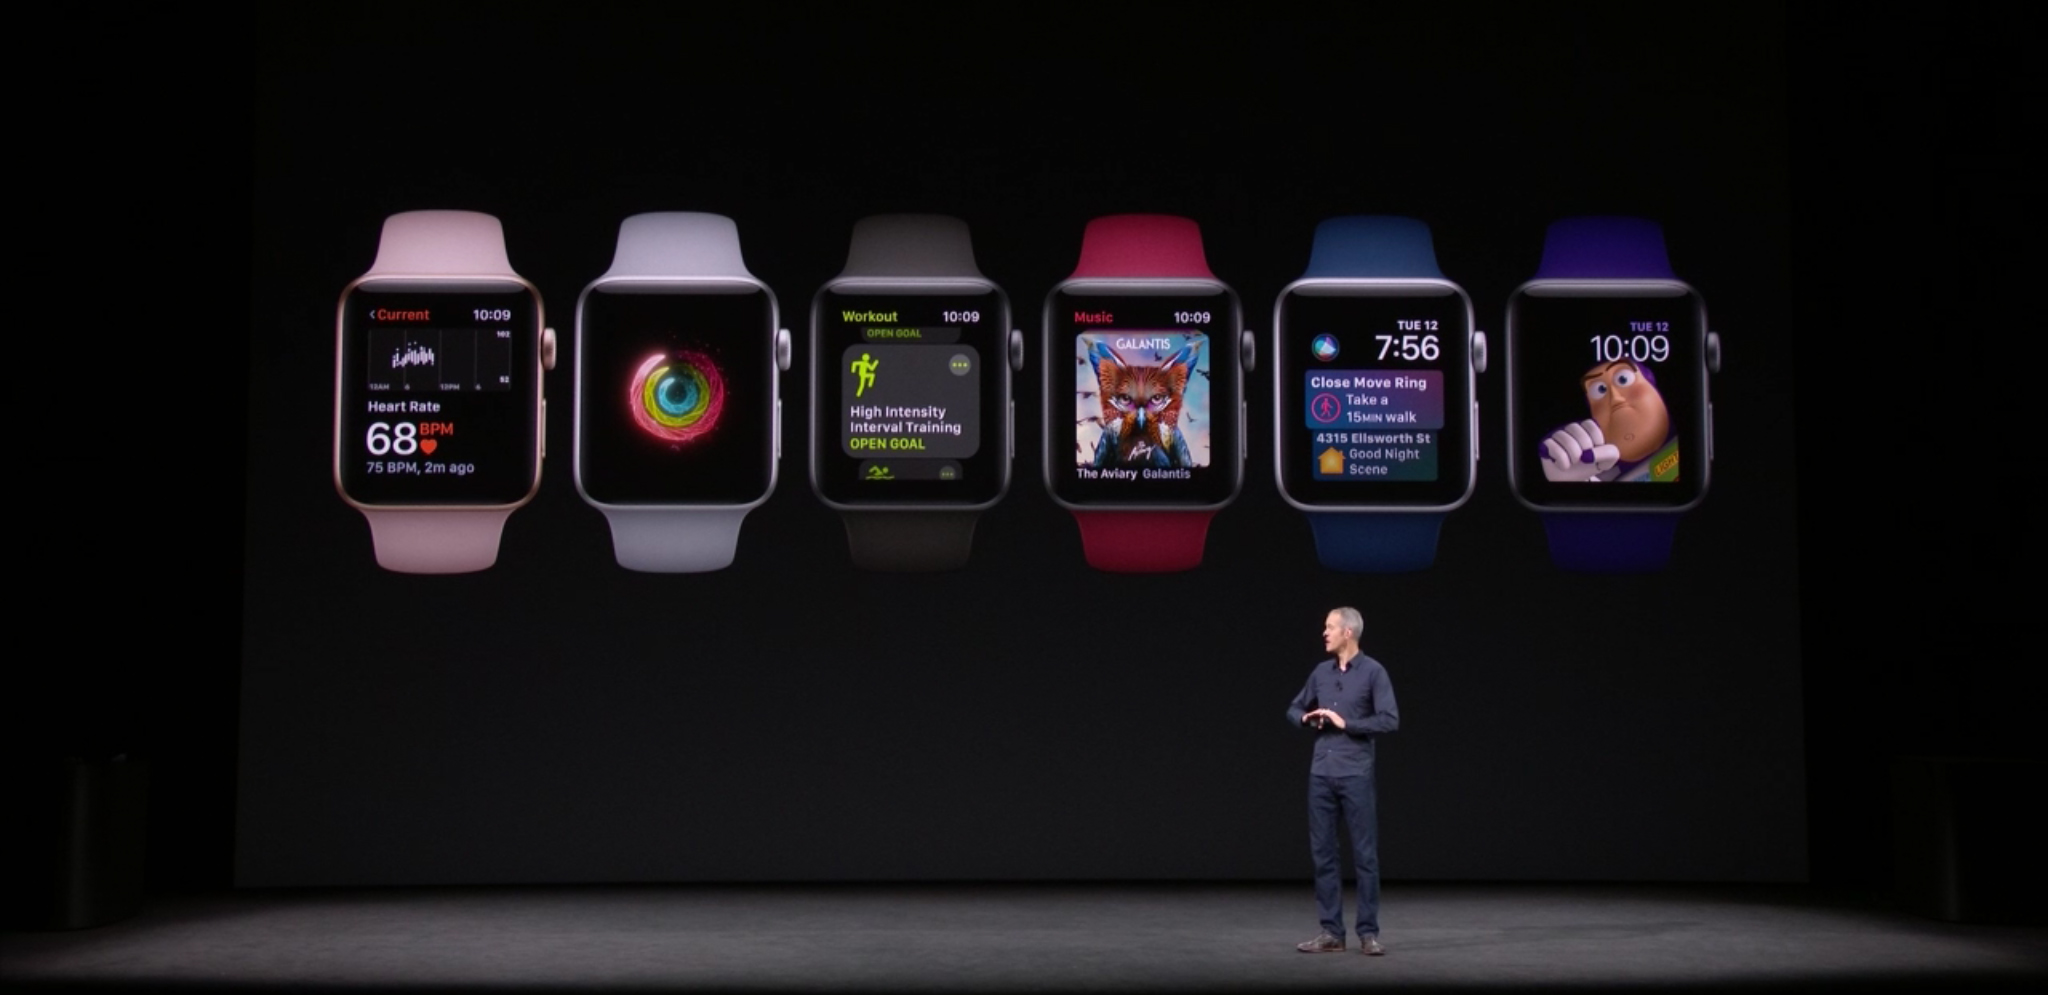 how to find iphone from apple watch